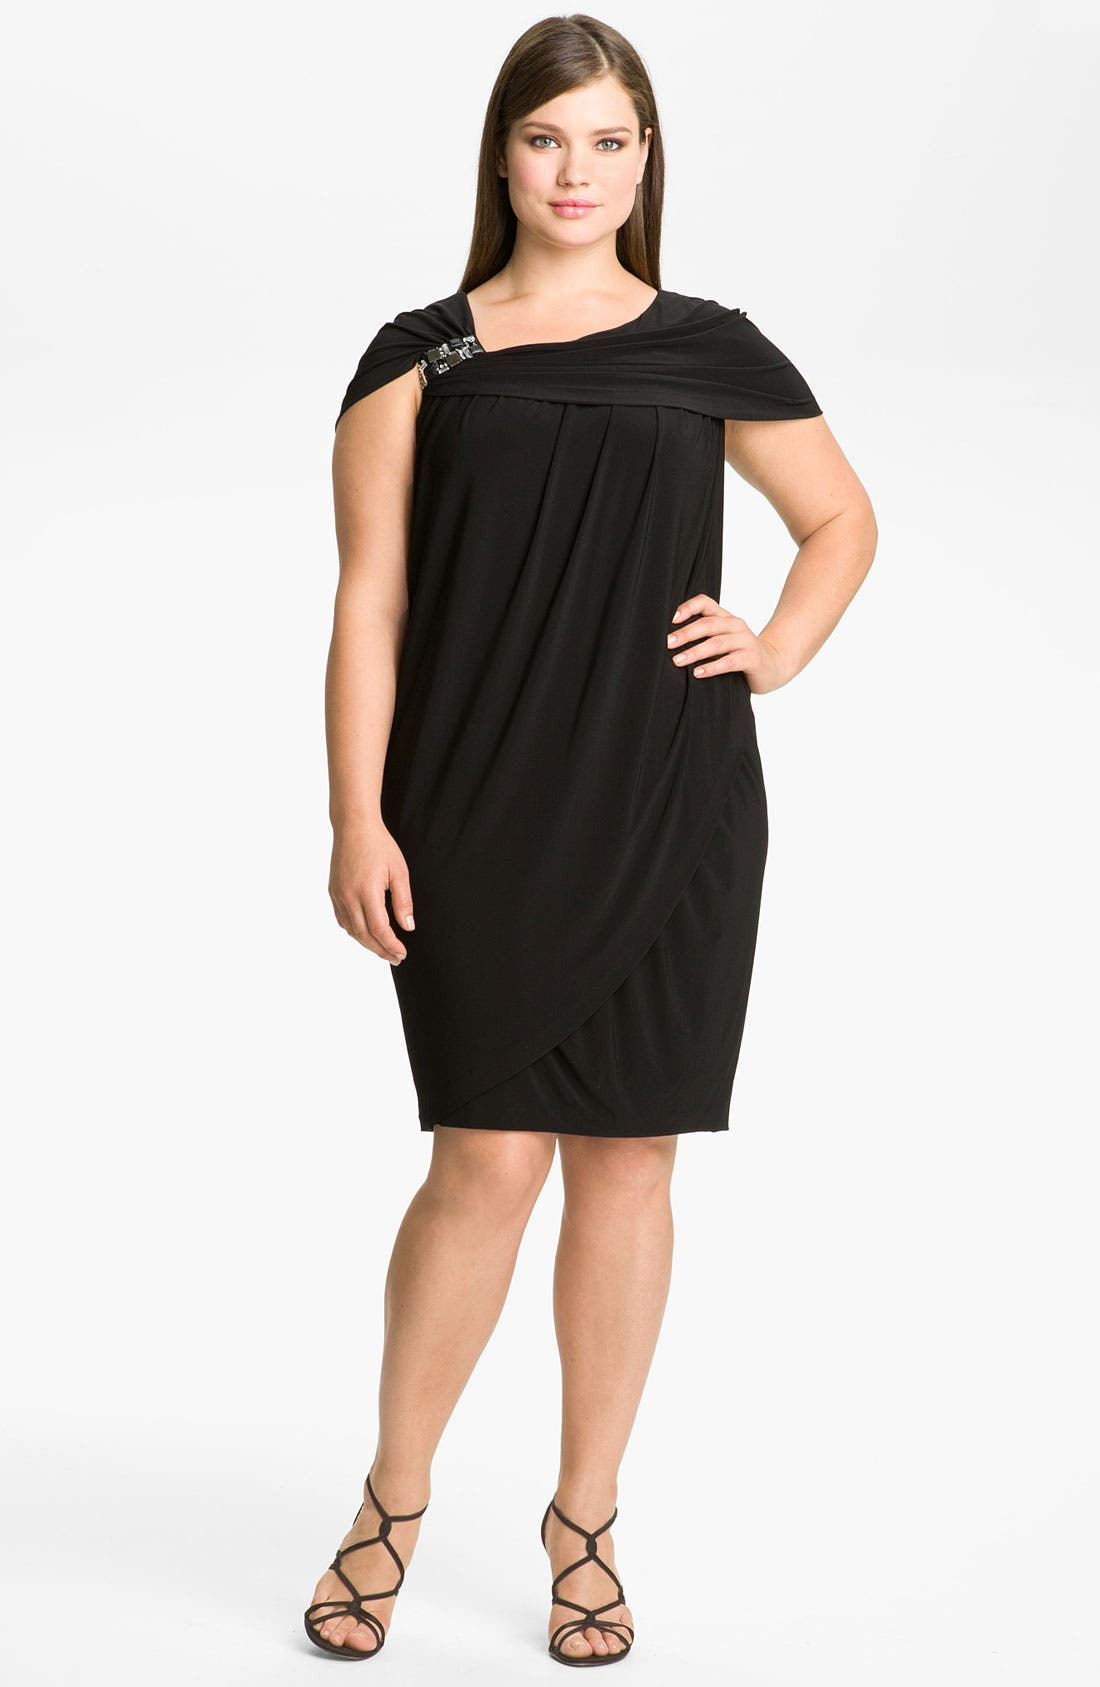 Alternate Image 1 Selected - Alex & Eve Beaded Jersey Dress (Plus Size)